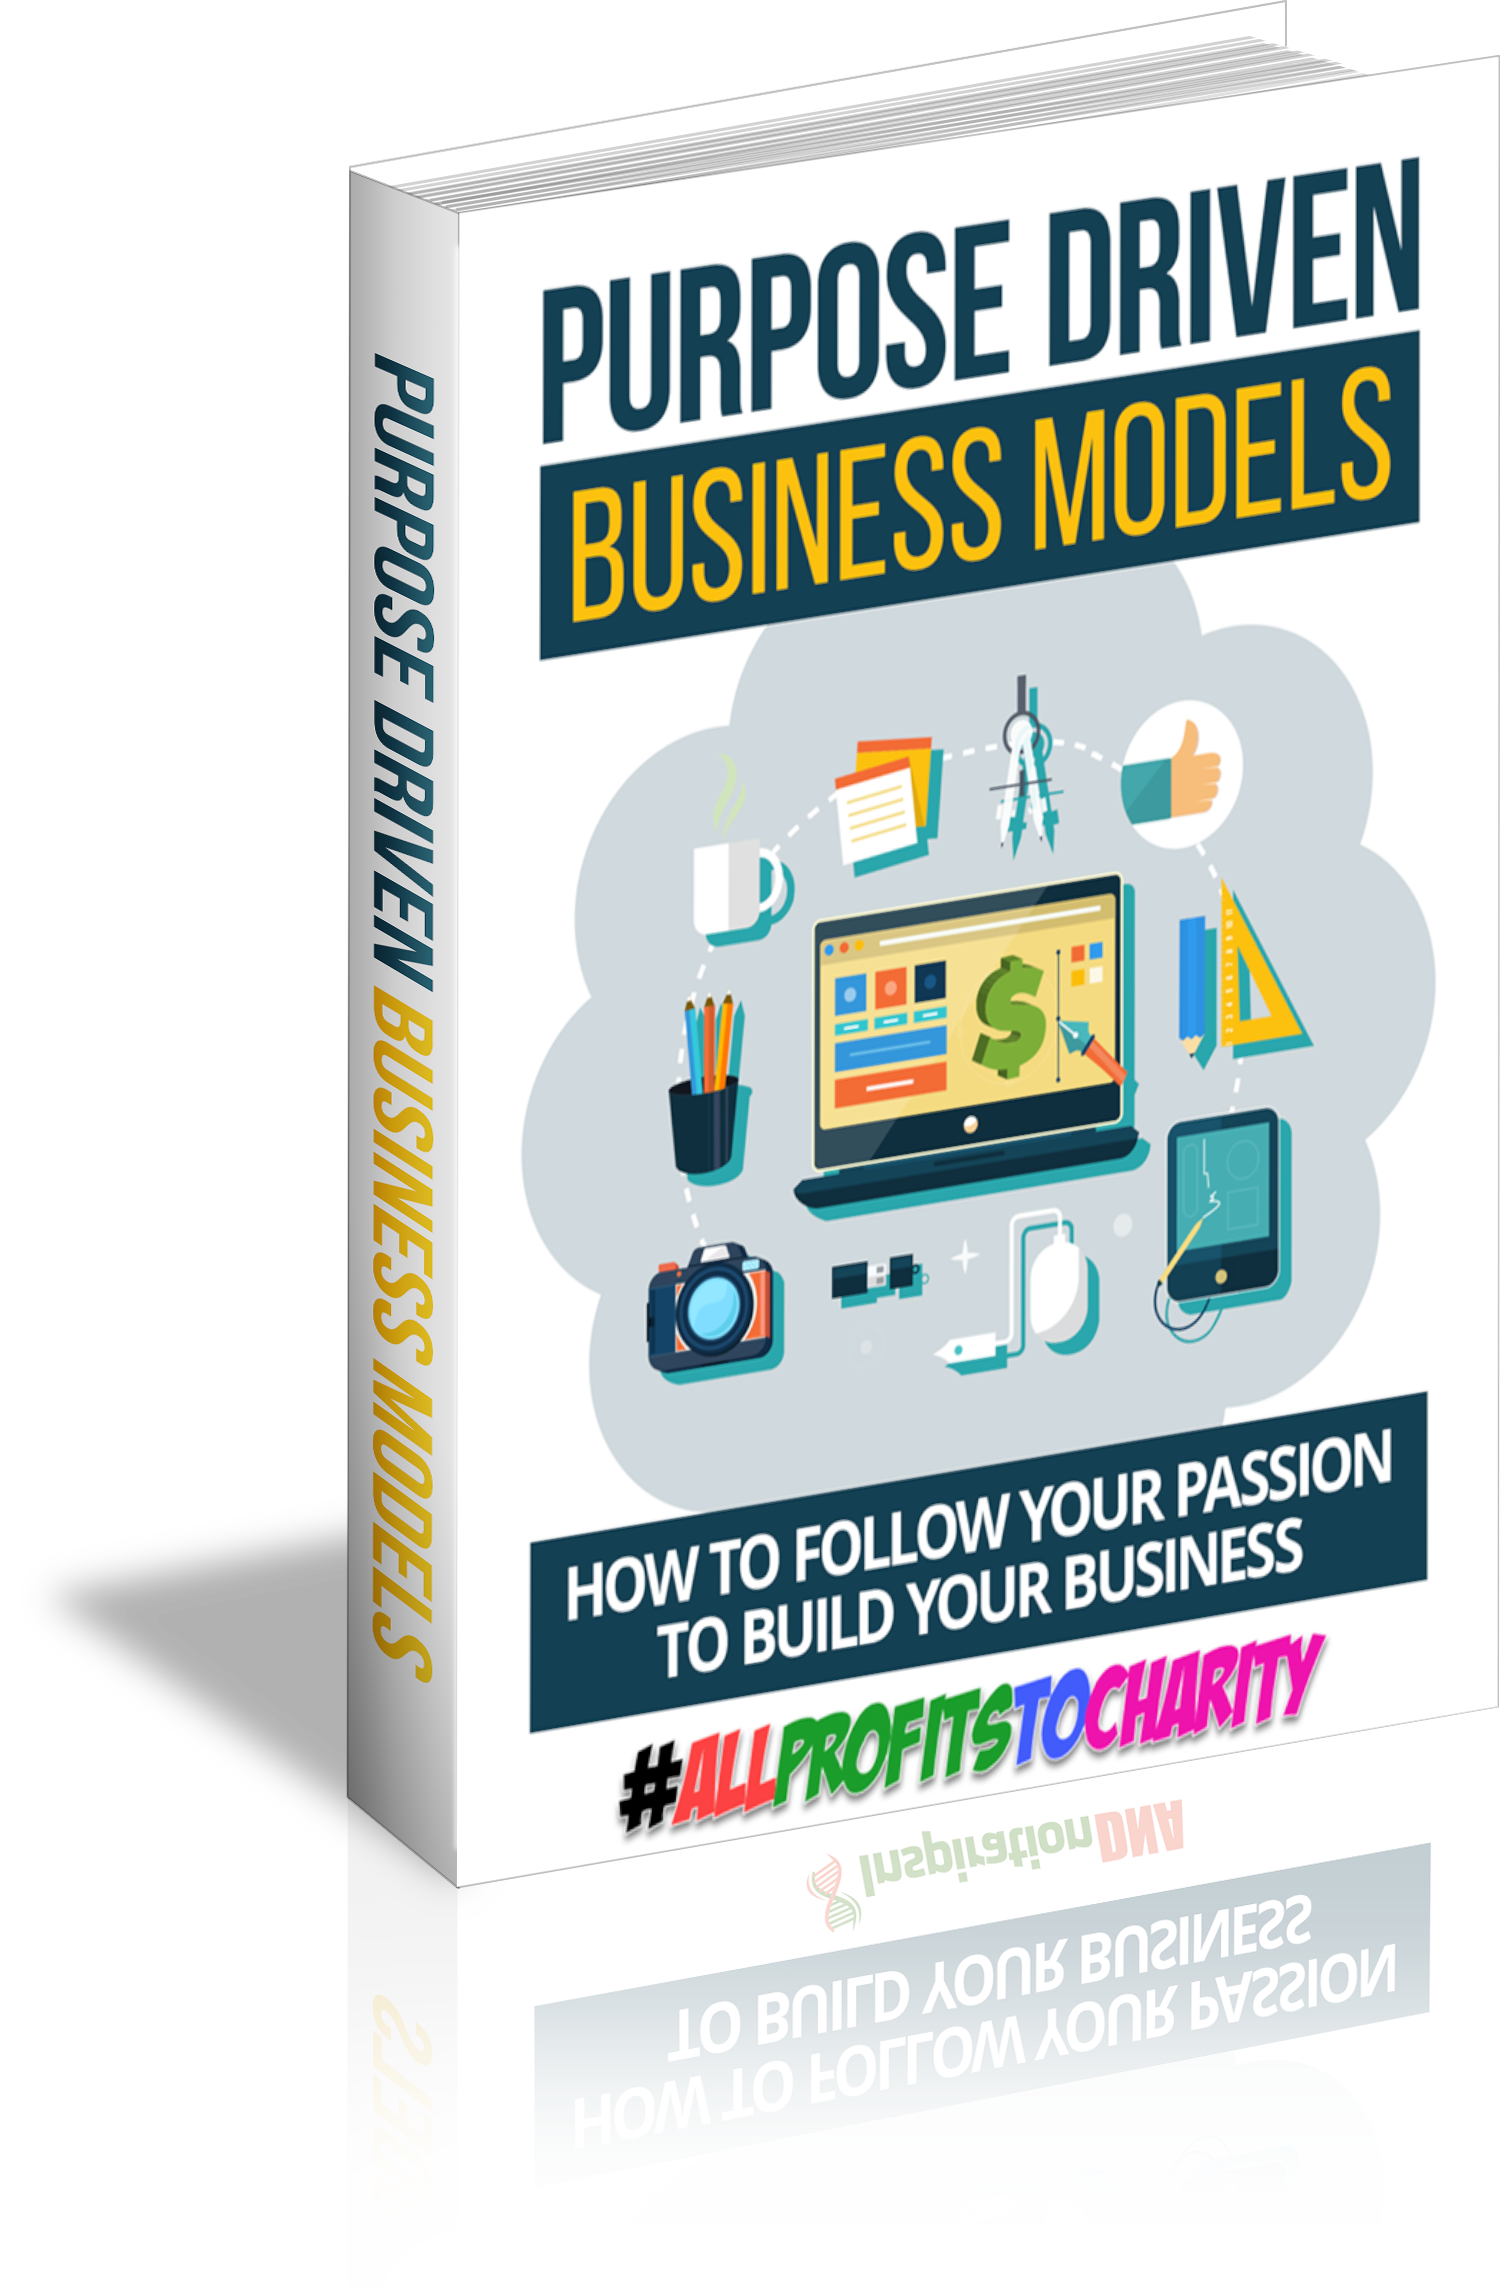 Purpose Driven Business Models cover